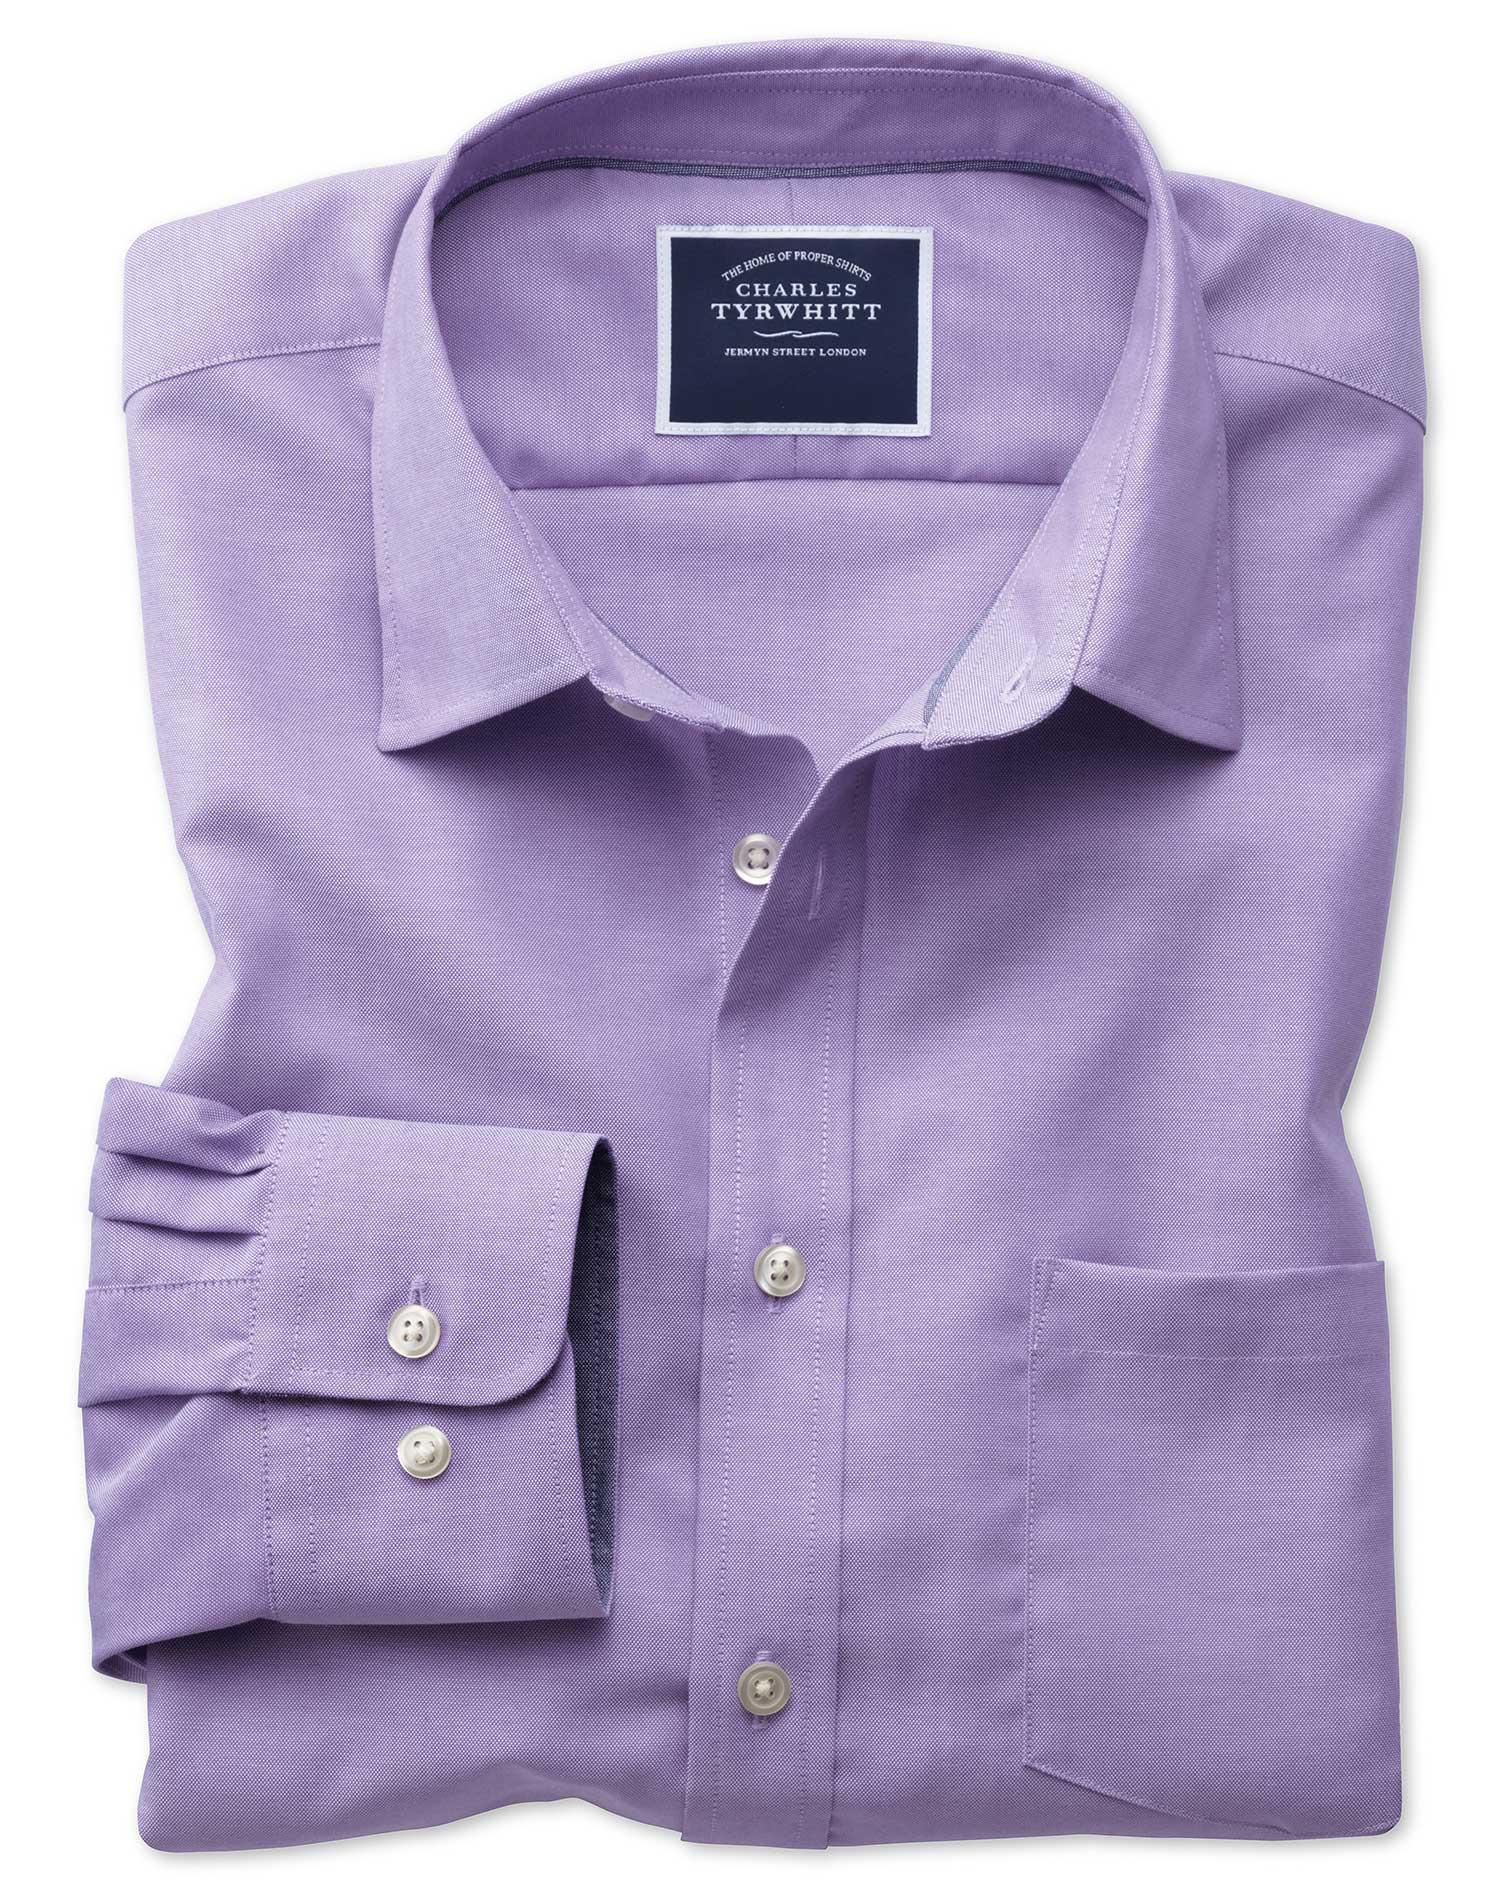 Slim Fit Non-Iron Oxford Purple Plain Cotton Shirt Single Cuff Size Large by Charles Tyrwhitt